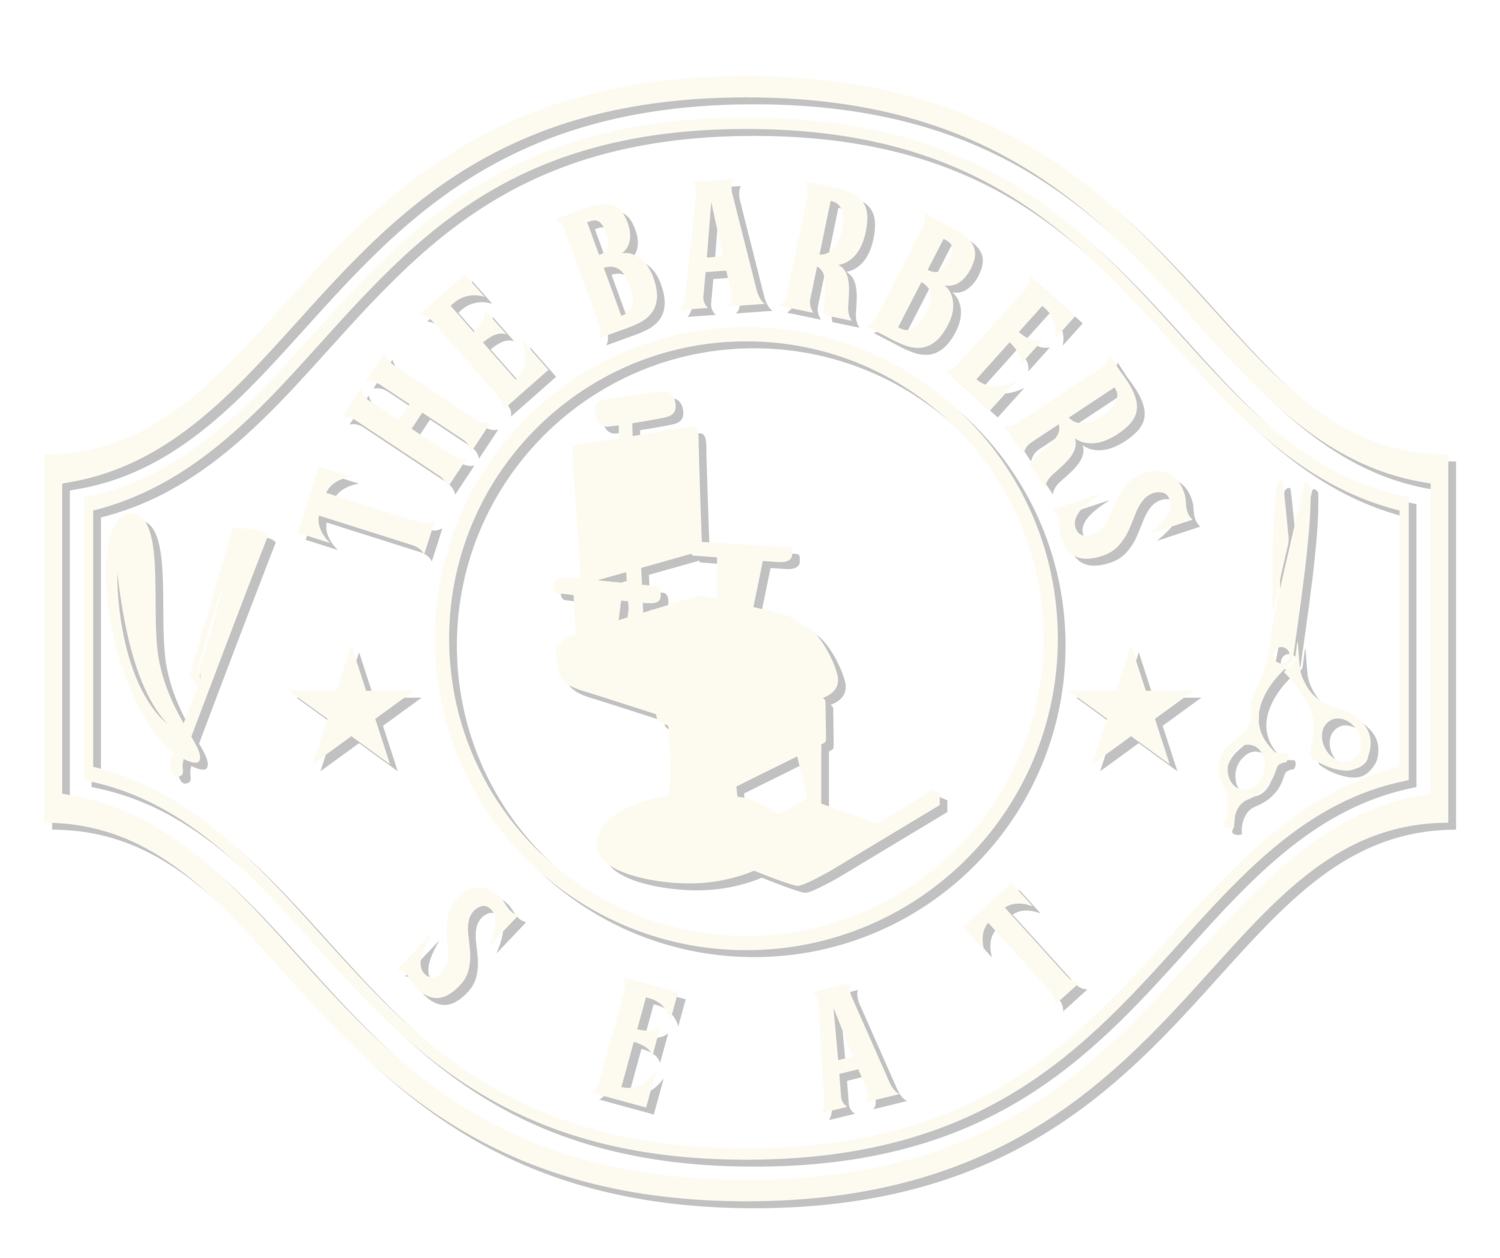 The Barbers Seat